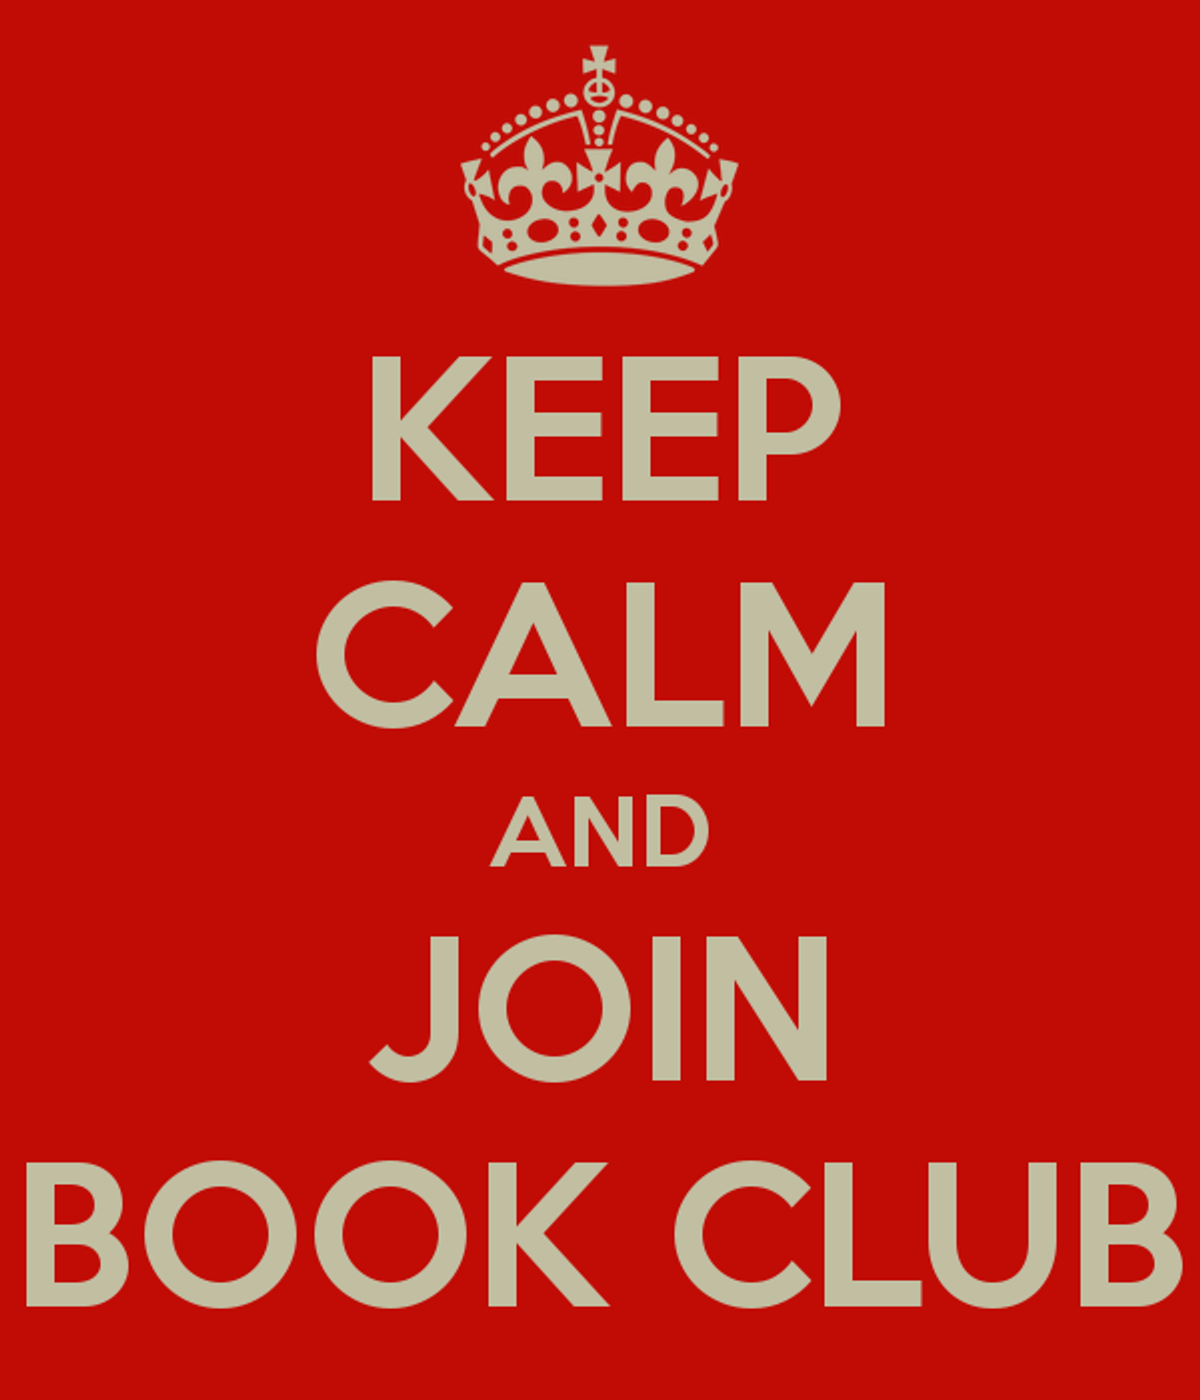 5 Reasons To Join A Book Club